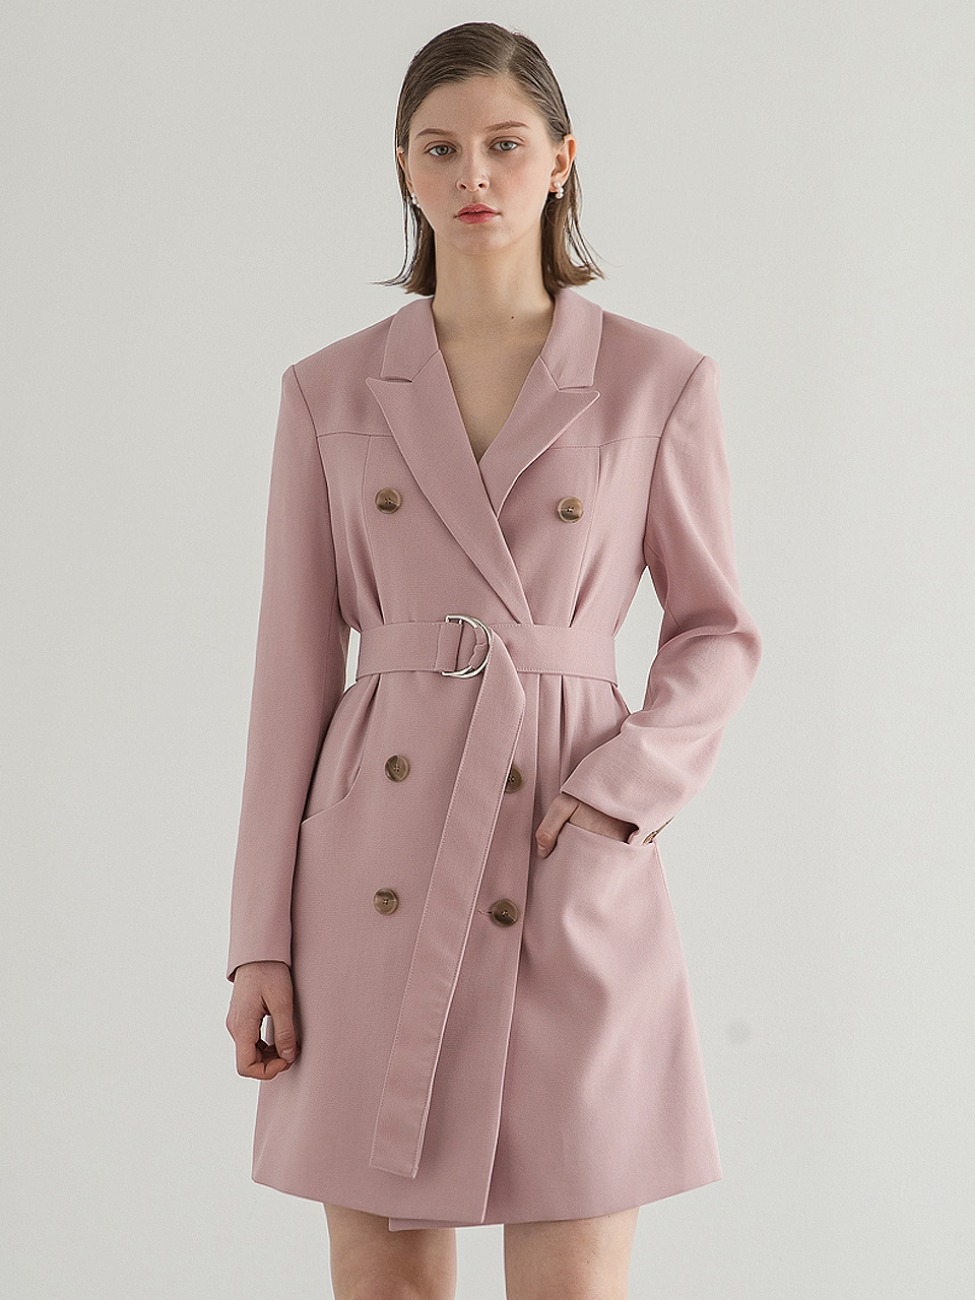 Double Princess Jacket Dress Pink